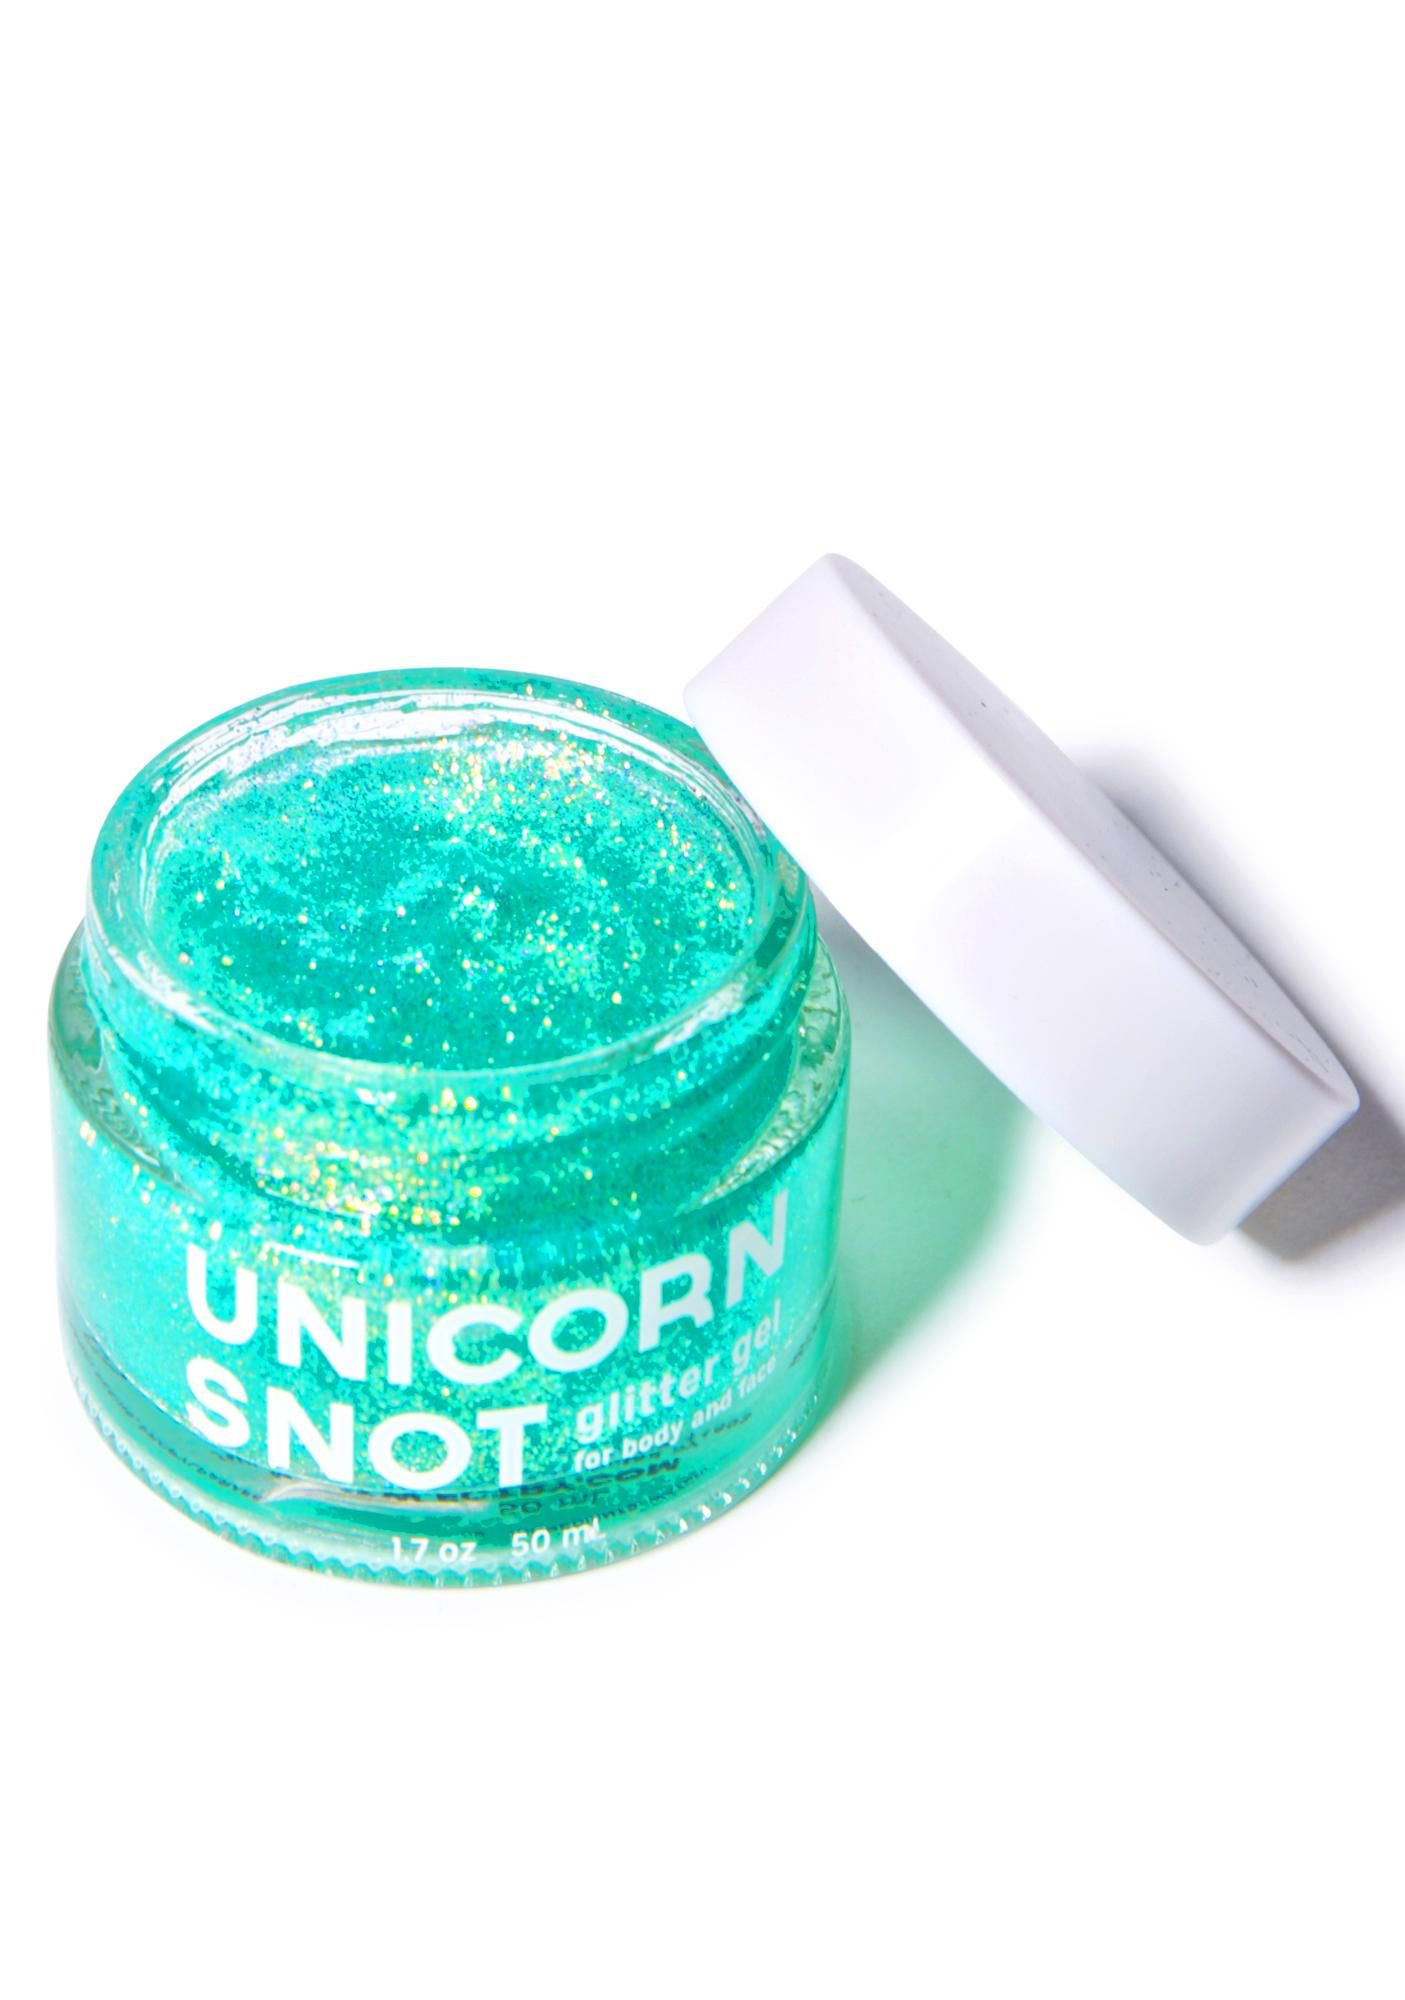 Unicorn Snot Blue Glitter Gel this body glitter is formulated for body and eyes leaving yew with iridescent blue colored glitter anywhere ya place this cool gel.